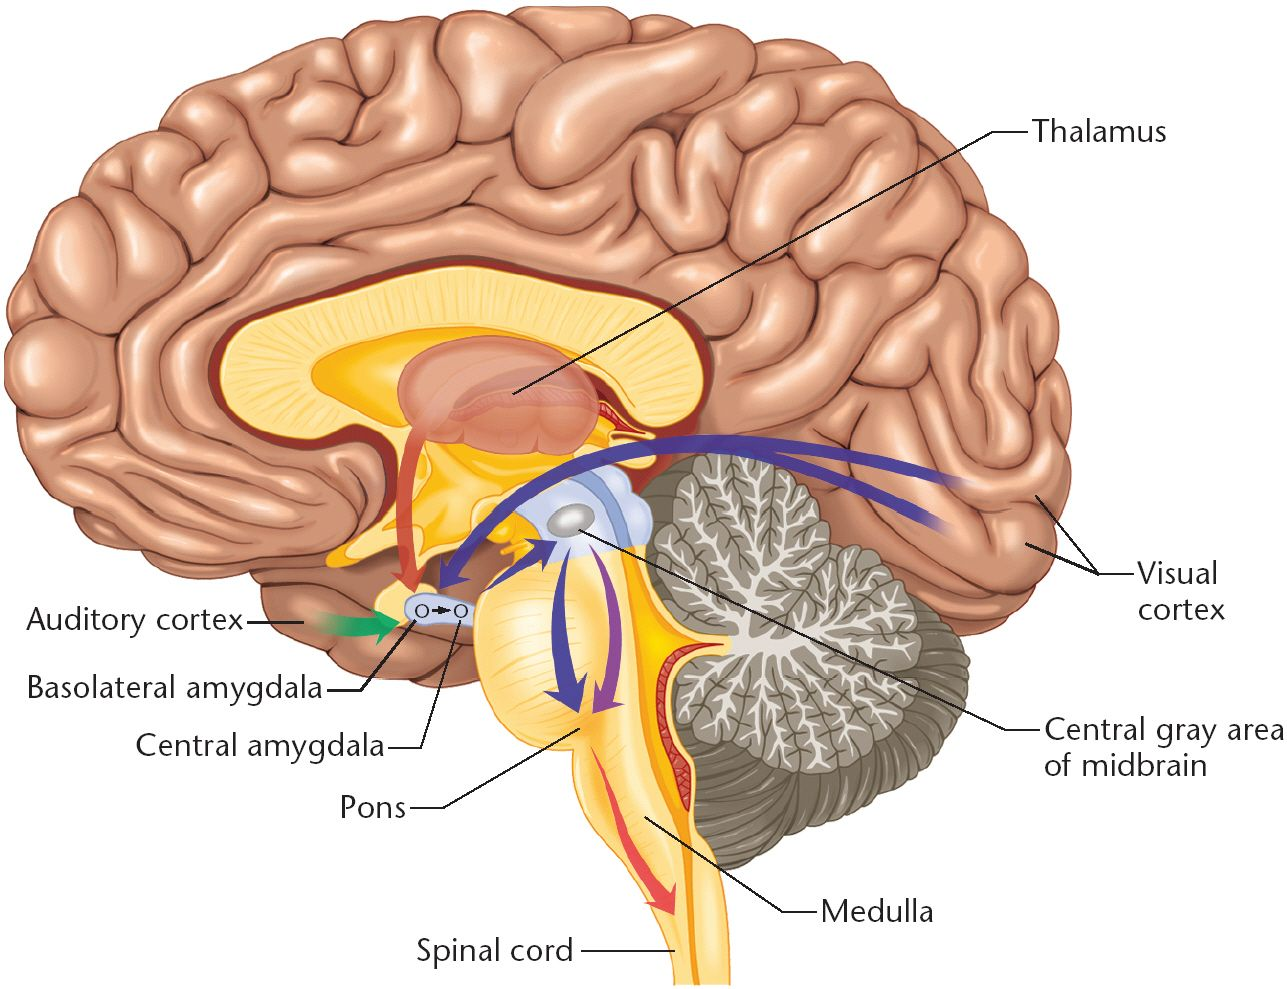 all parts of inside brain unlabeled diagram brain diagram labeled diagram of the brain wellnessarticles [ 1287 x 989 Pixel ]